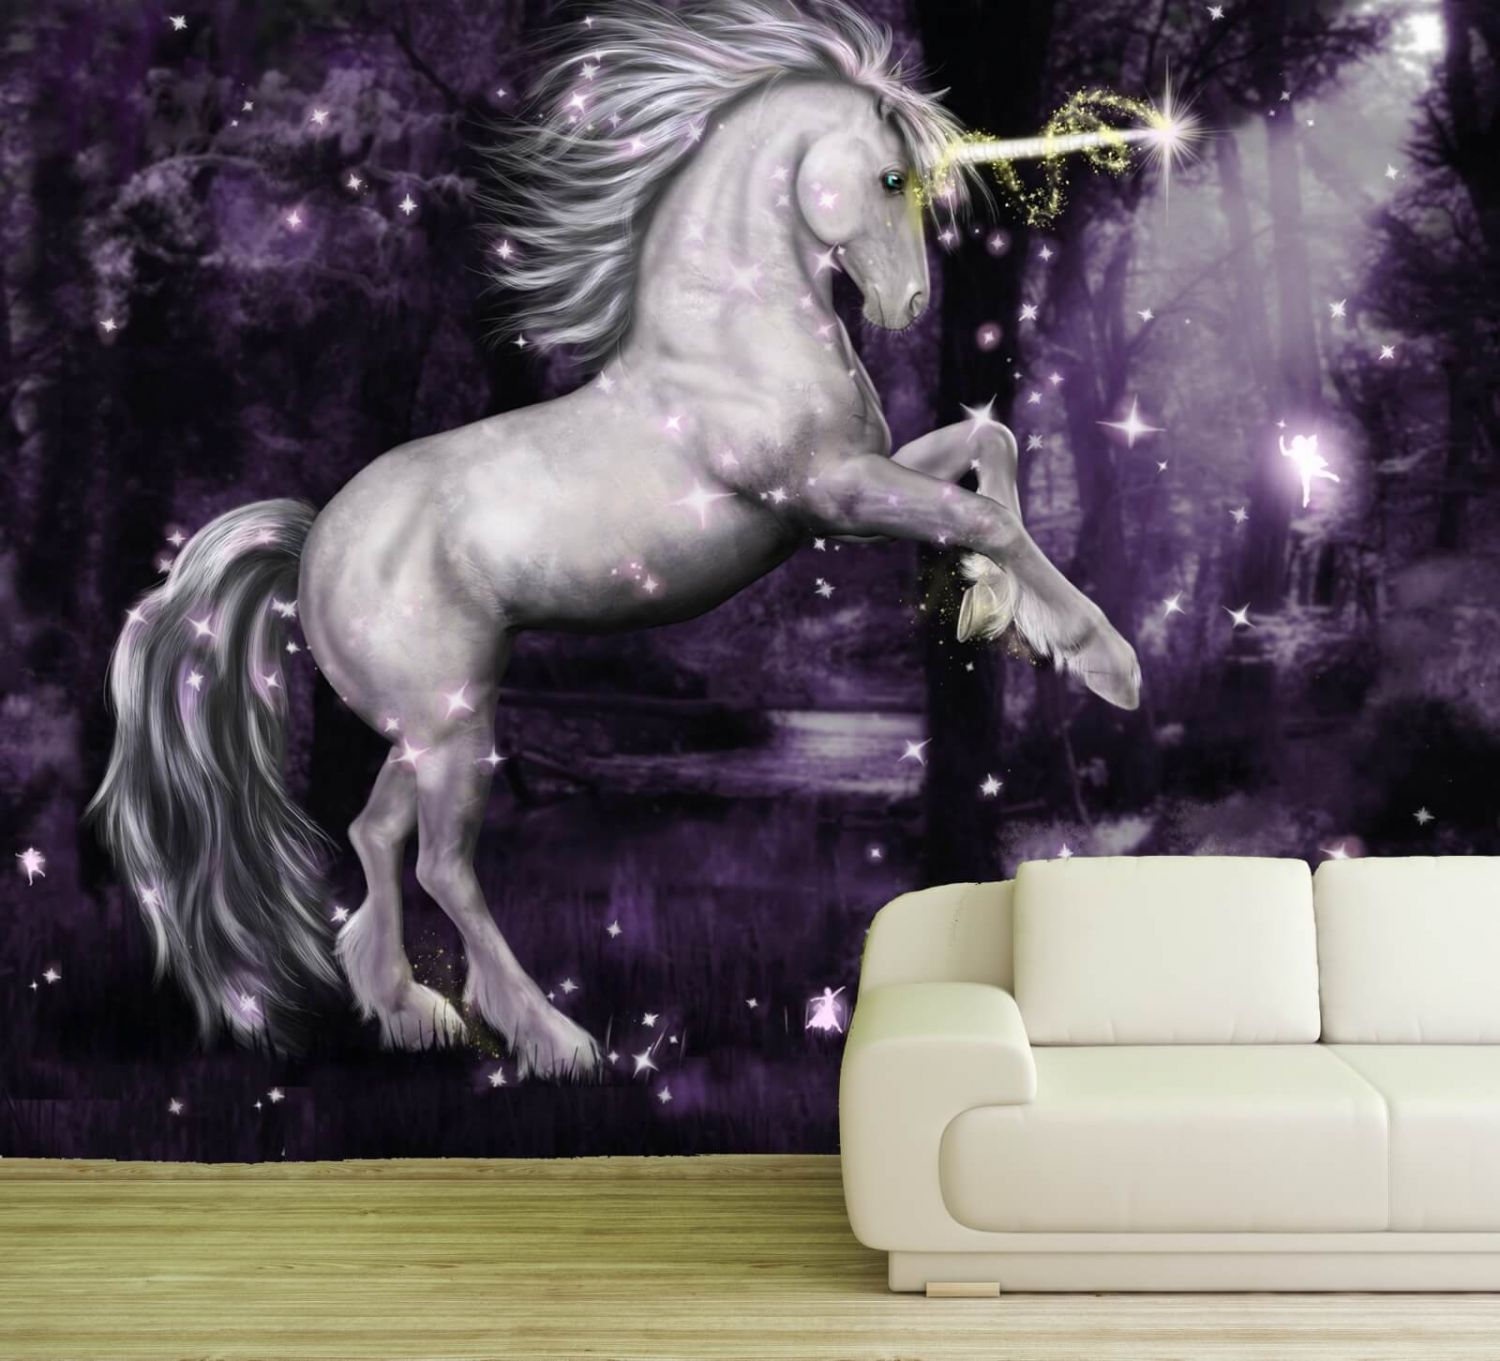 xxl poster fototapete tapete vlies einhorn in lila ebay. Black Bedroom Furniture Sets. Home Design Ideas